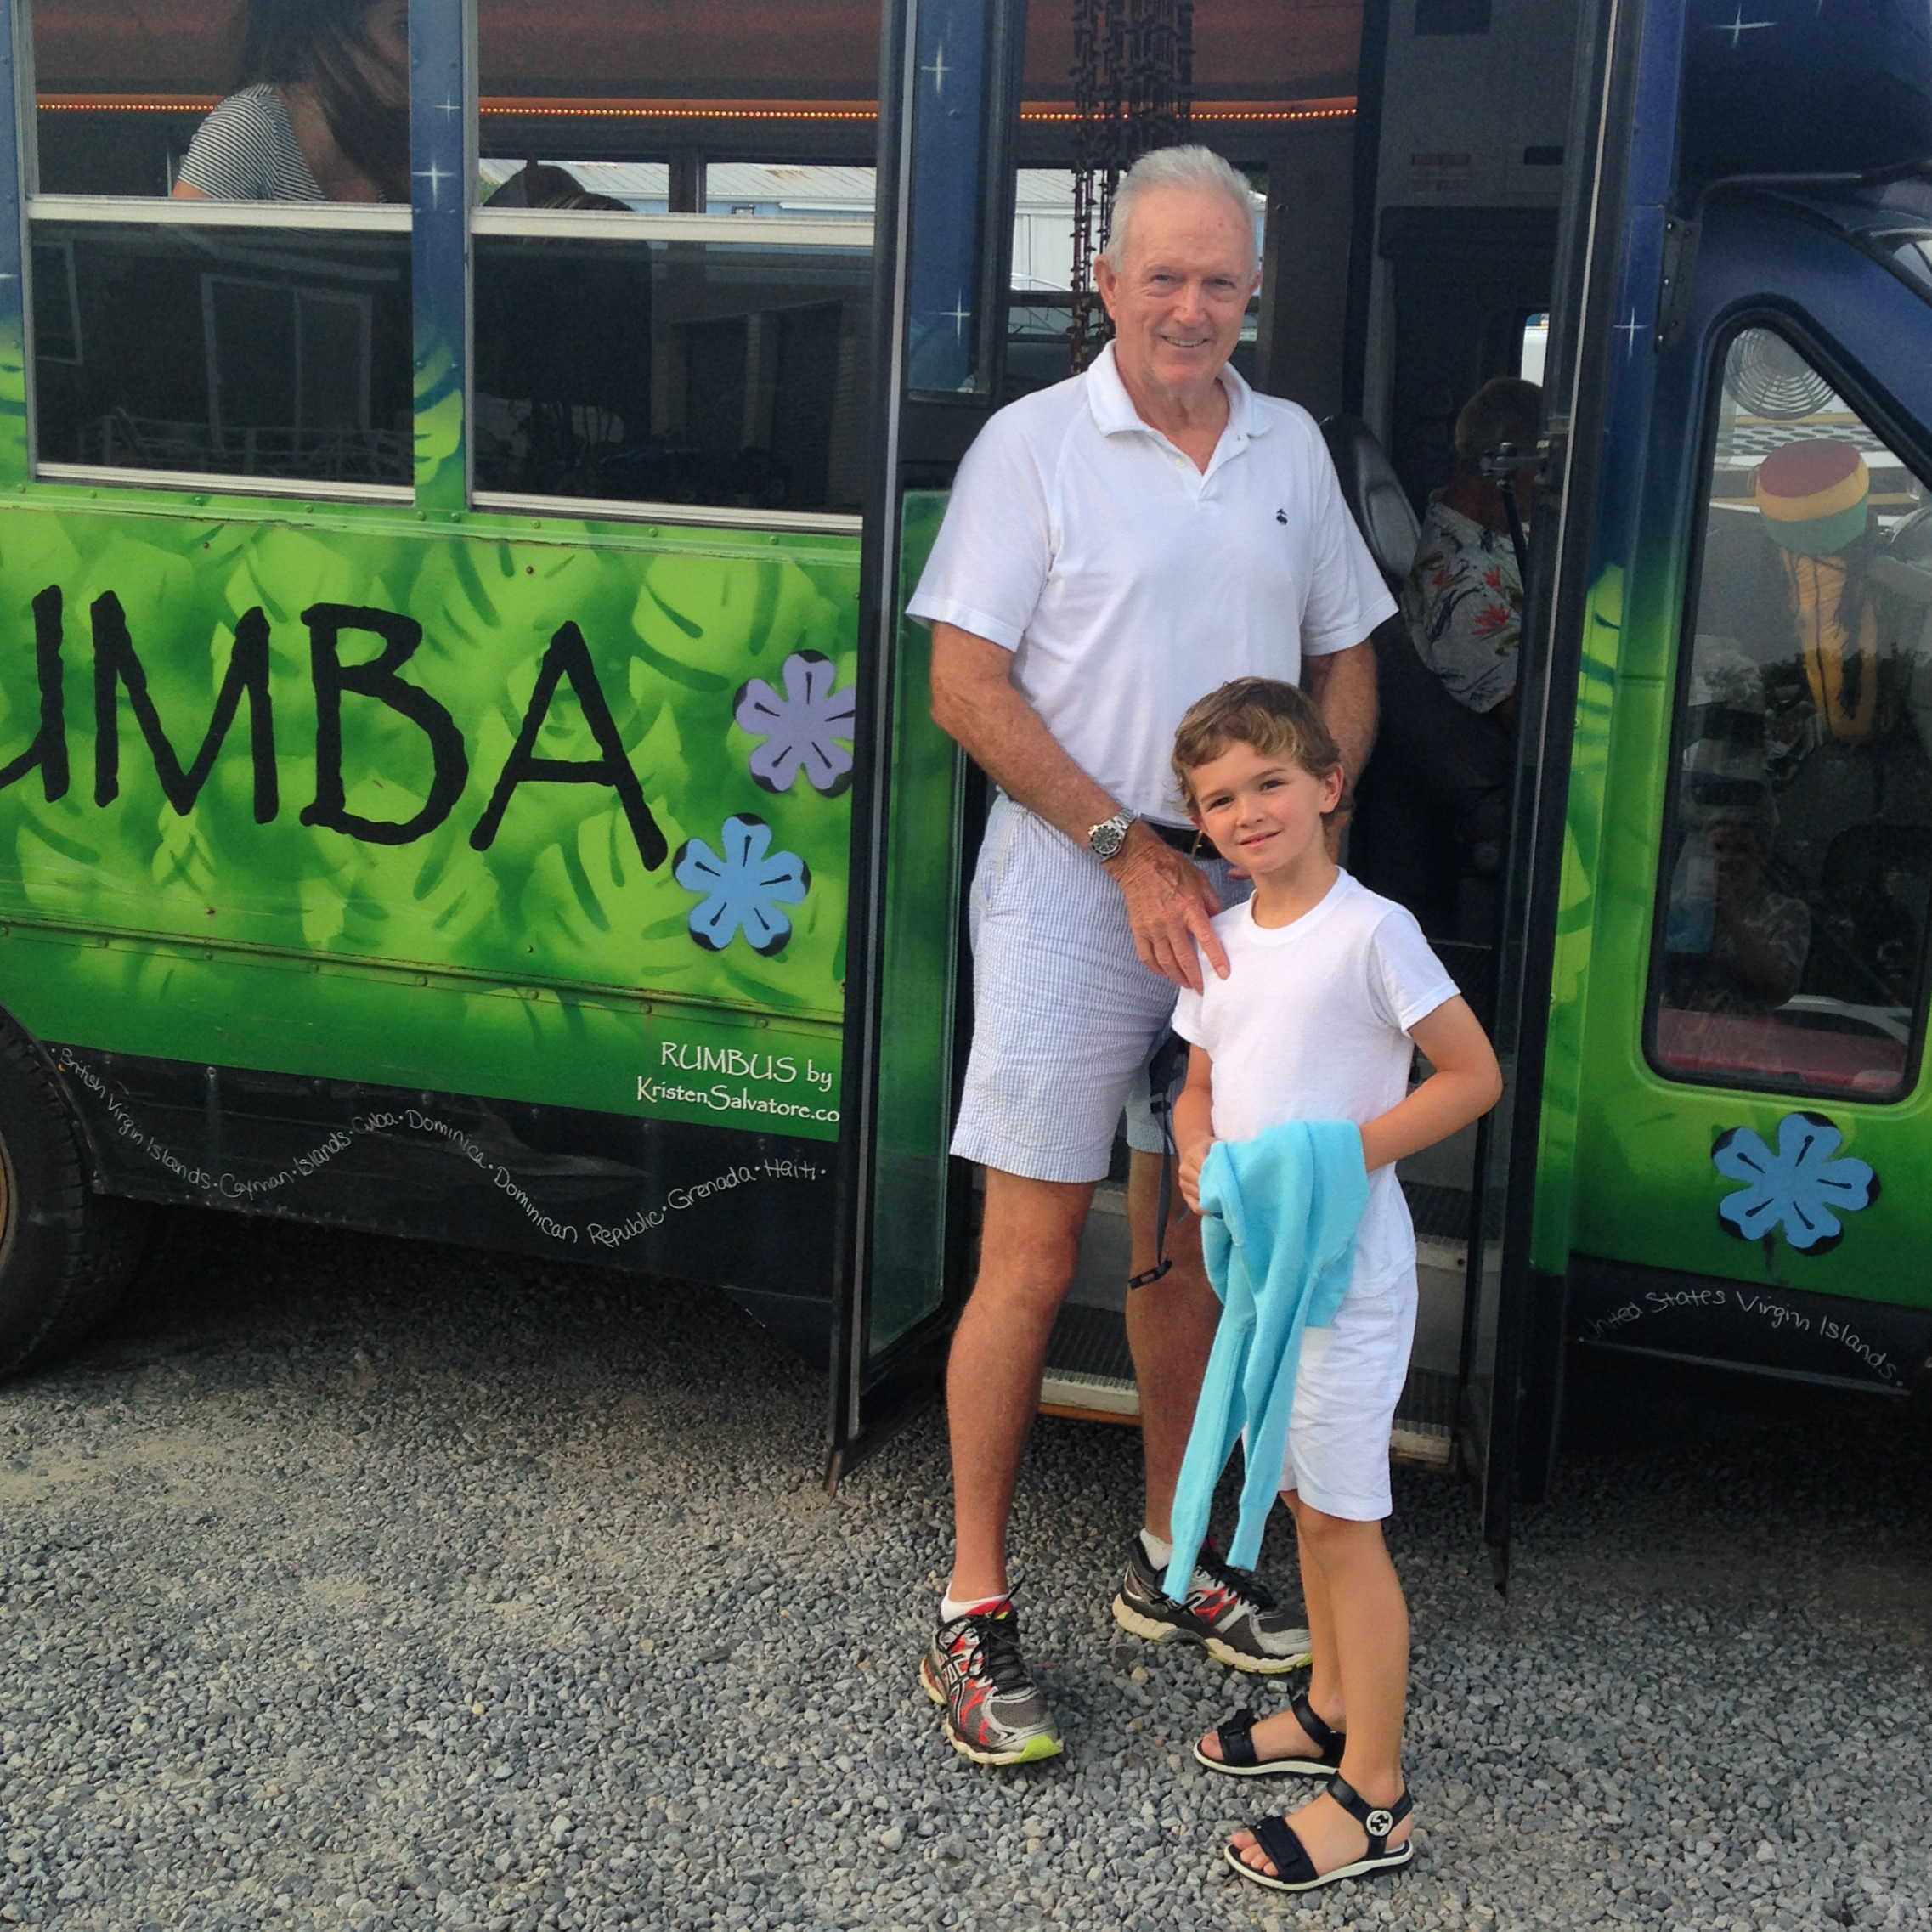 Brady and his grandfather Paul at Rumba